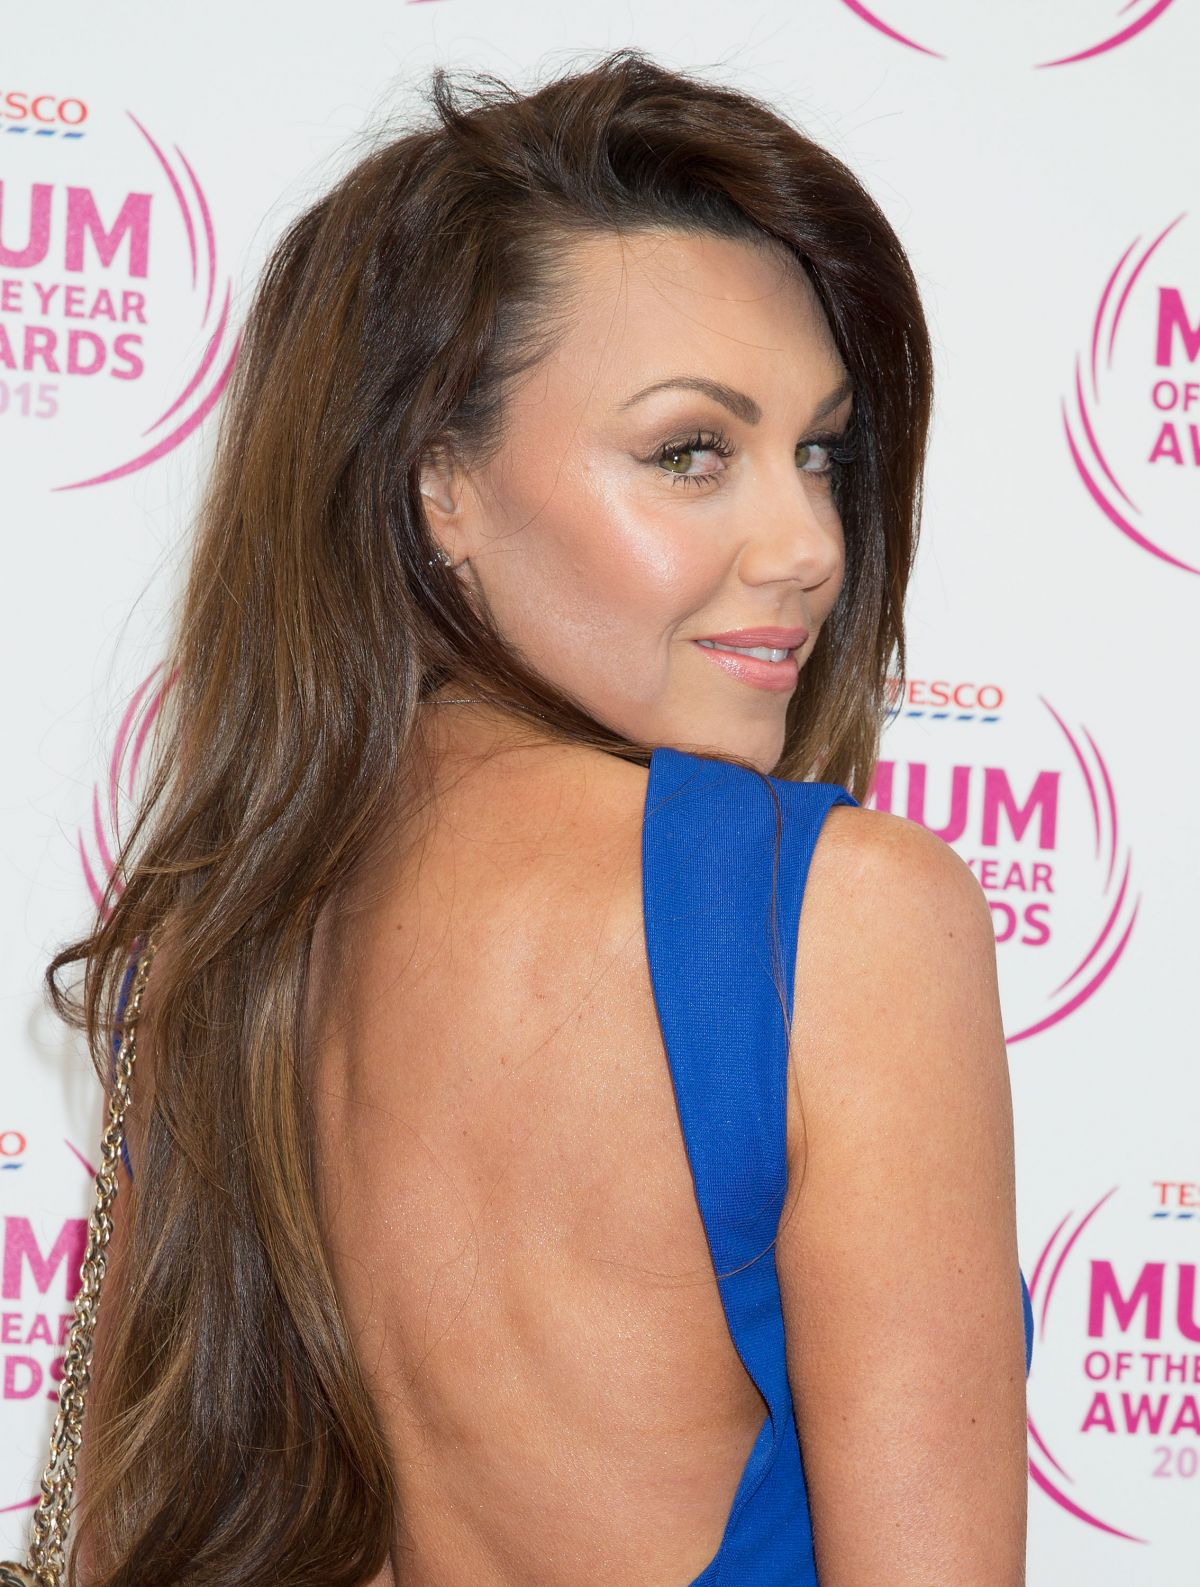 MICHELLE HEATON at Mum of the Year 2015 Awards in London – HawtCelebs